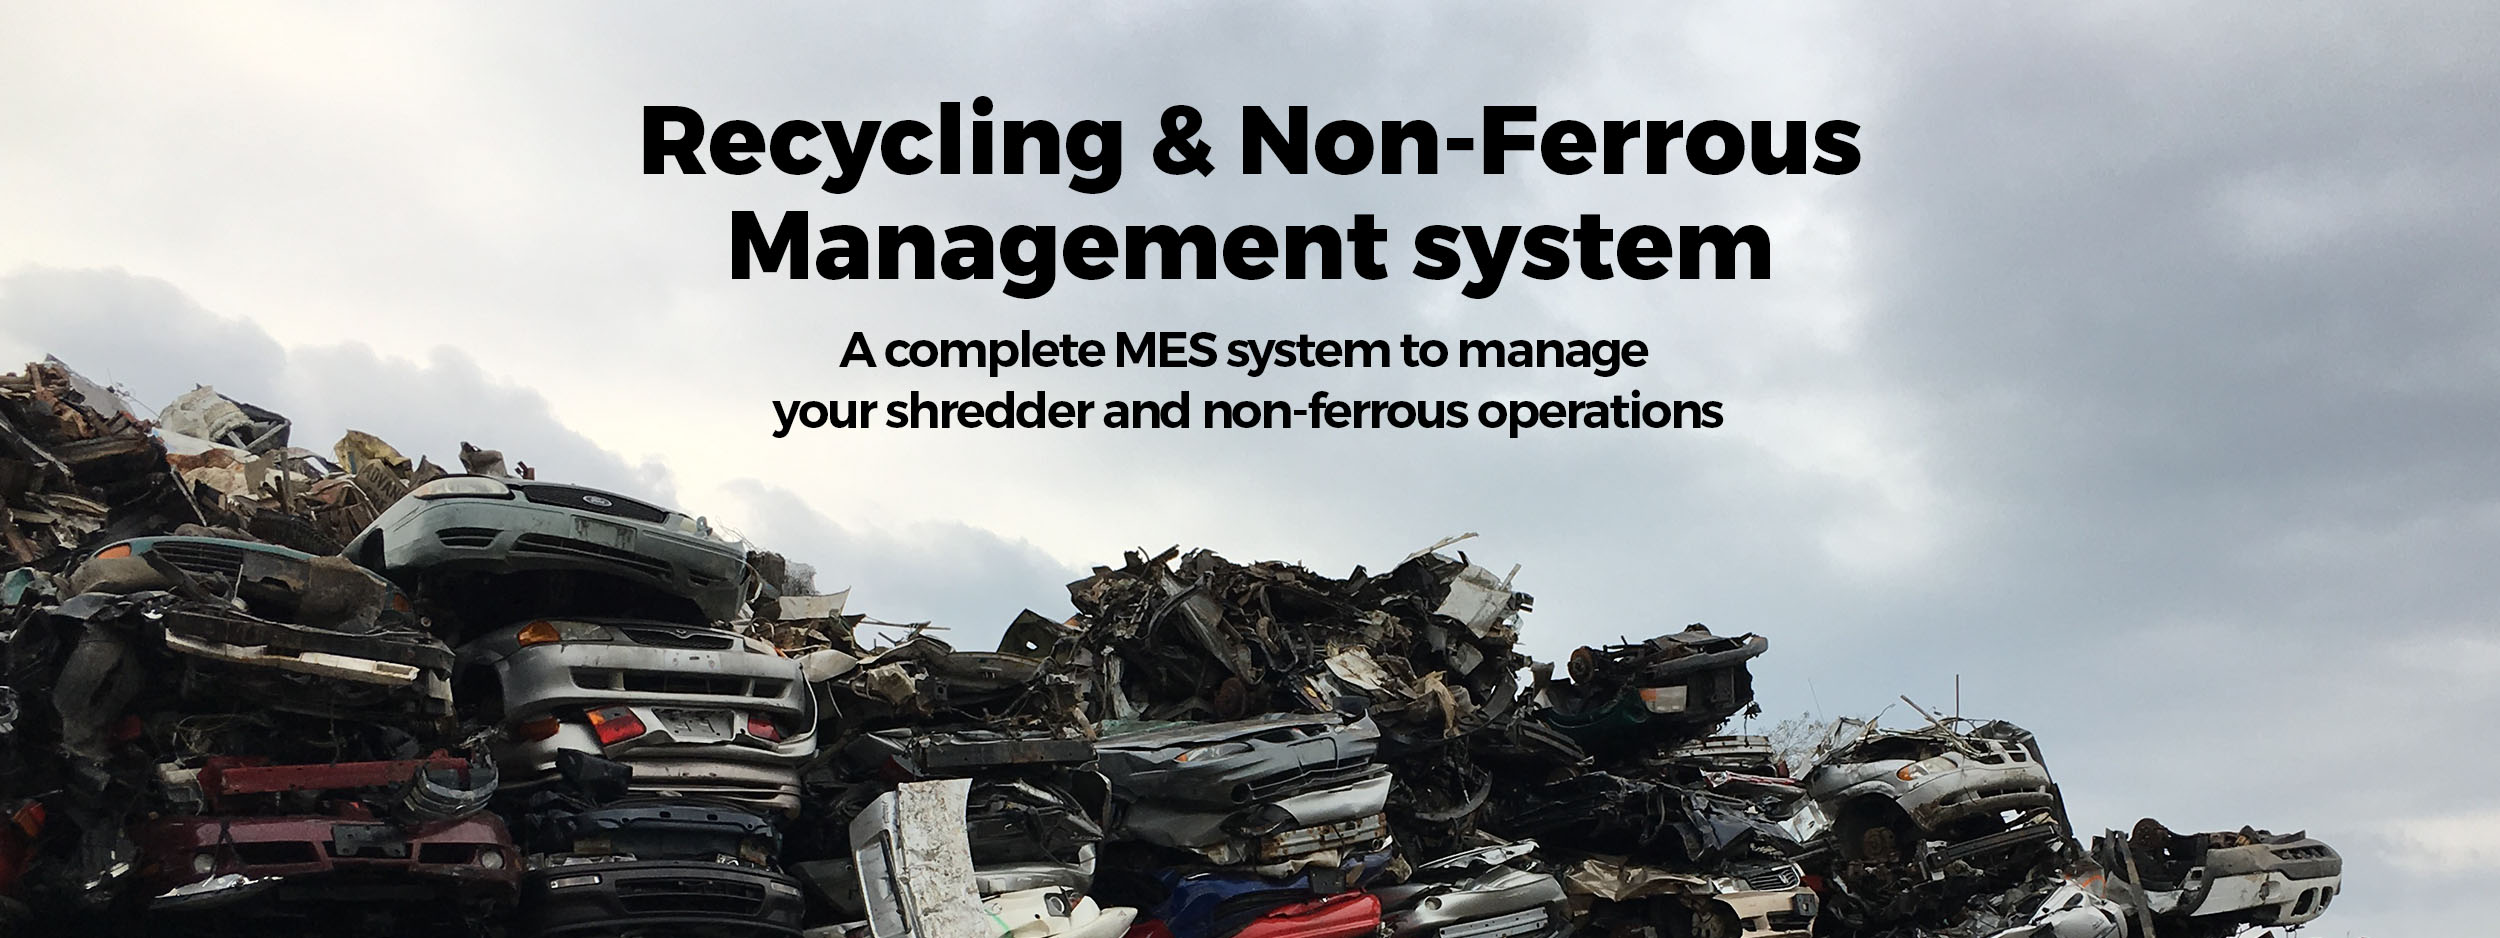 Recycling and Non-Ferrous Management System.